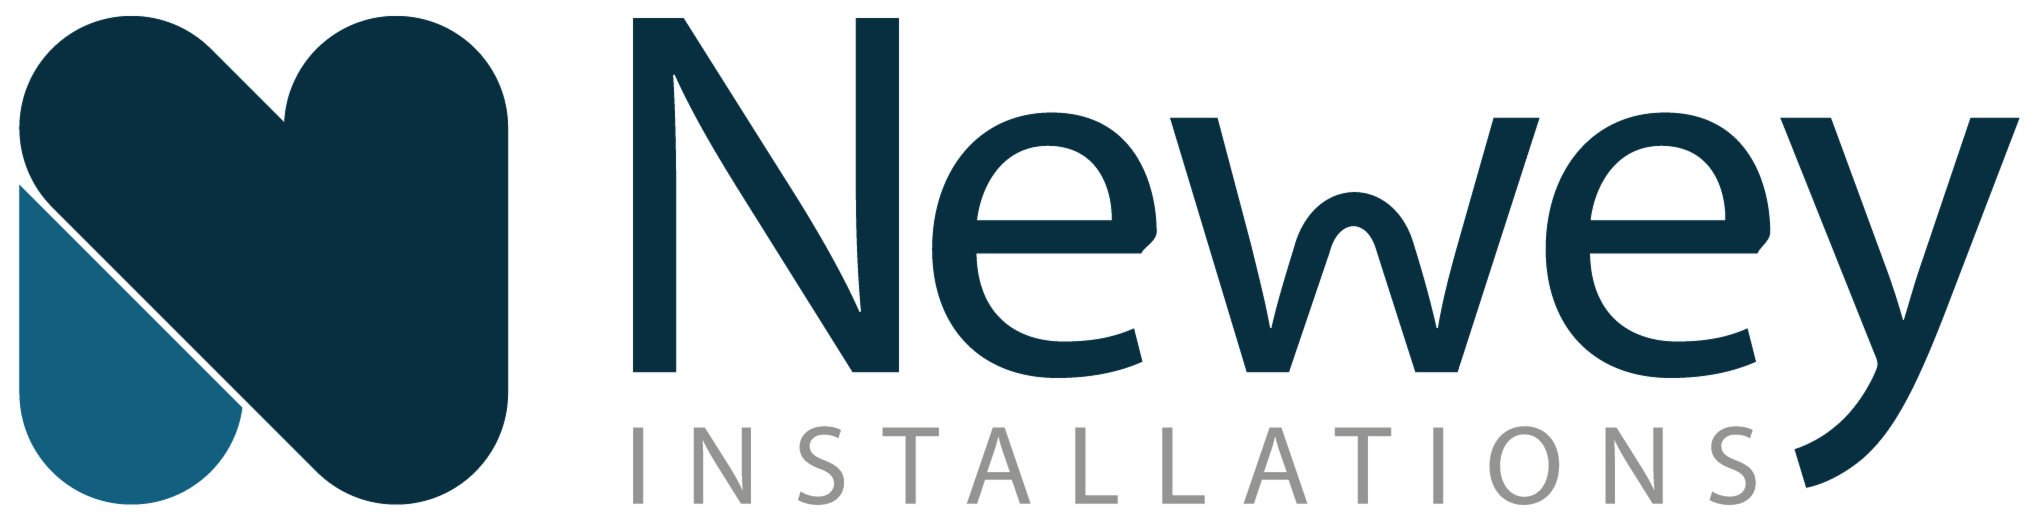 Newey Installations Ltd